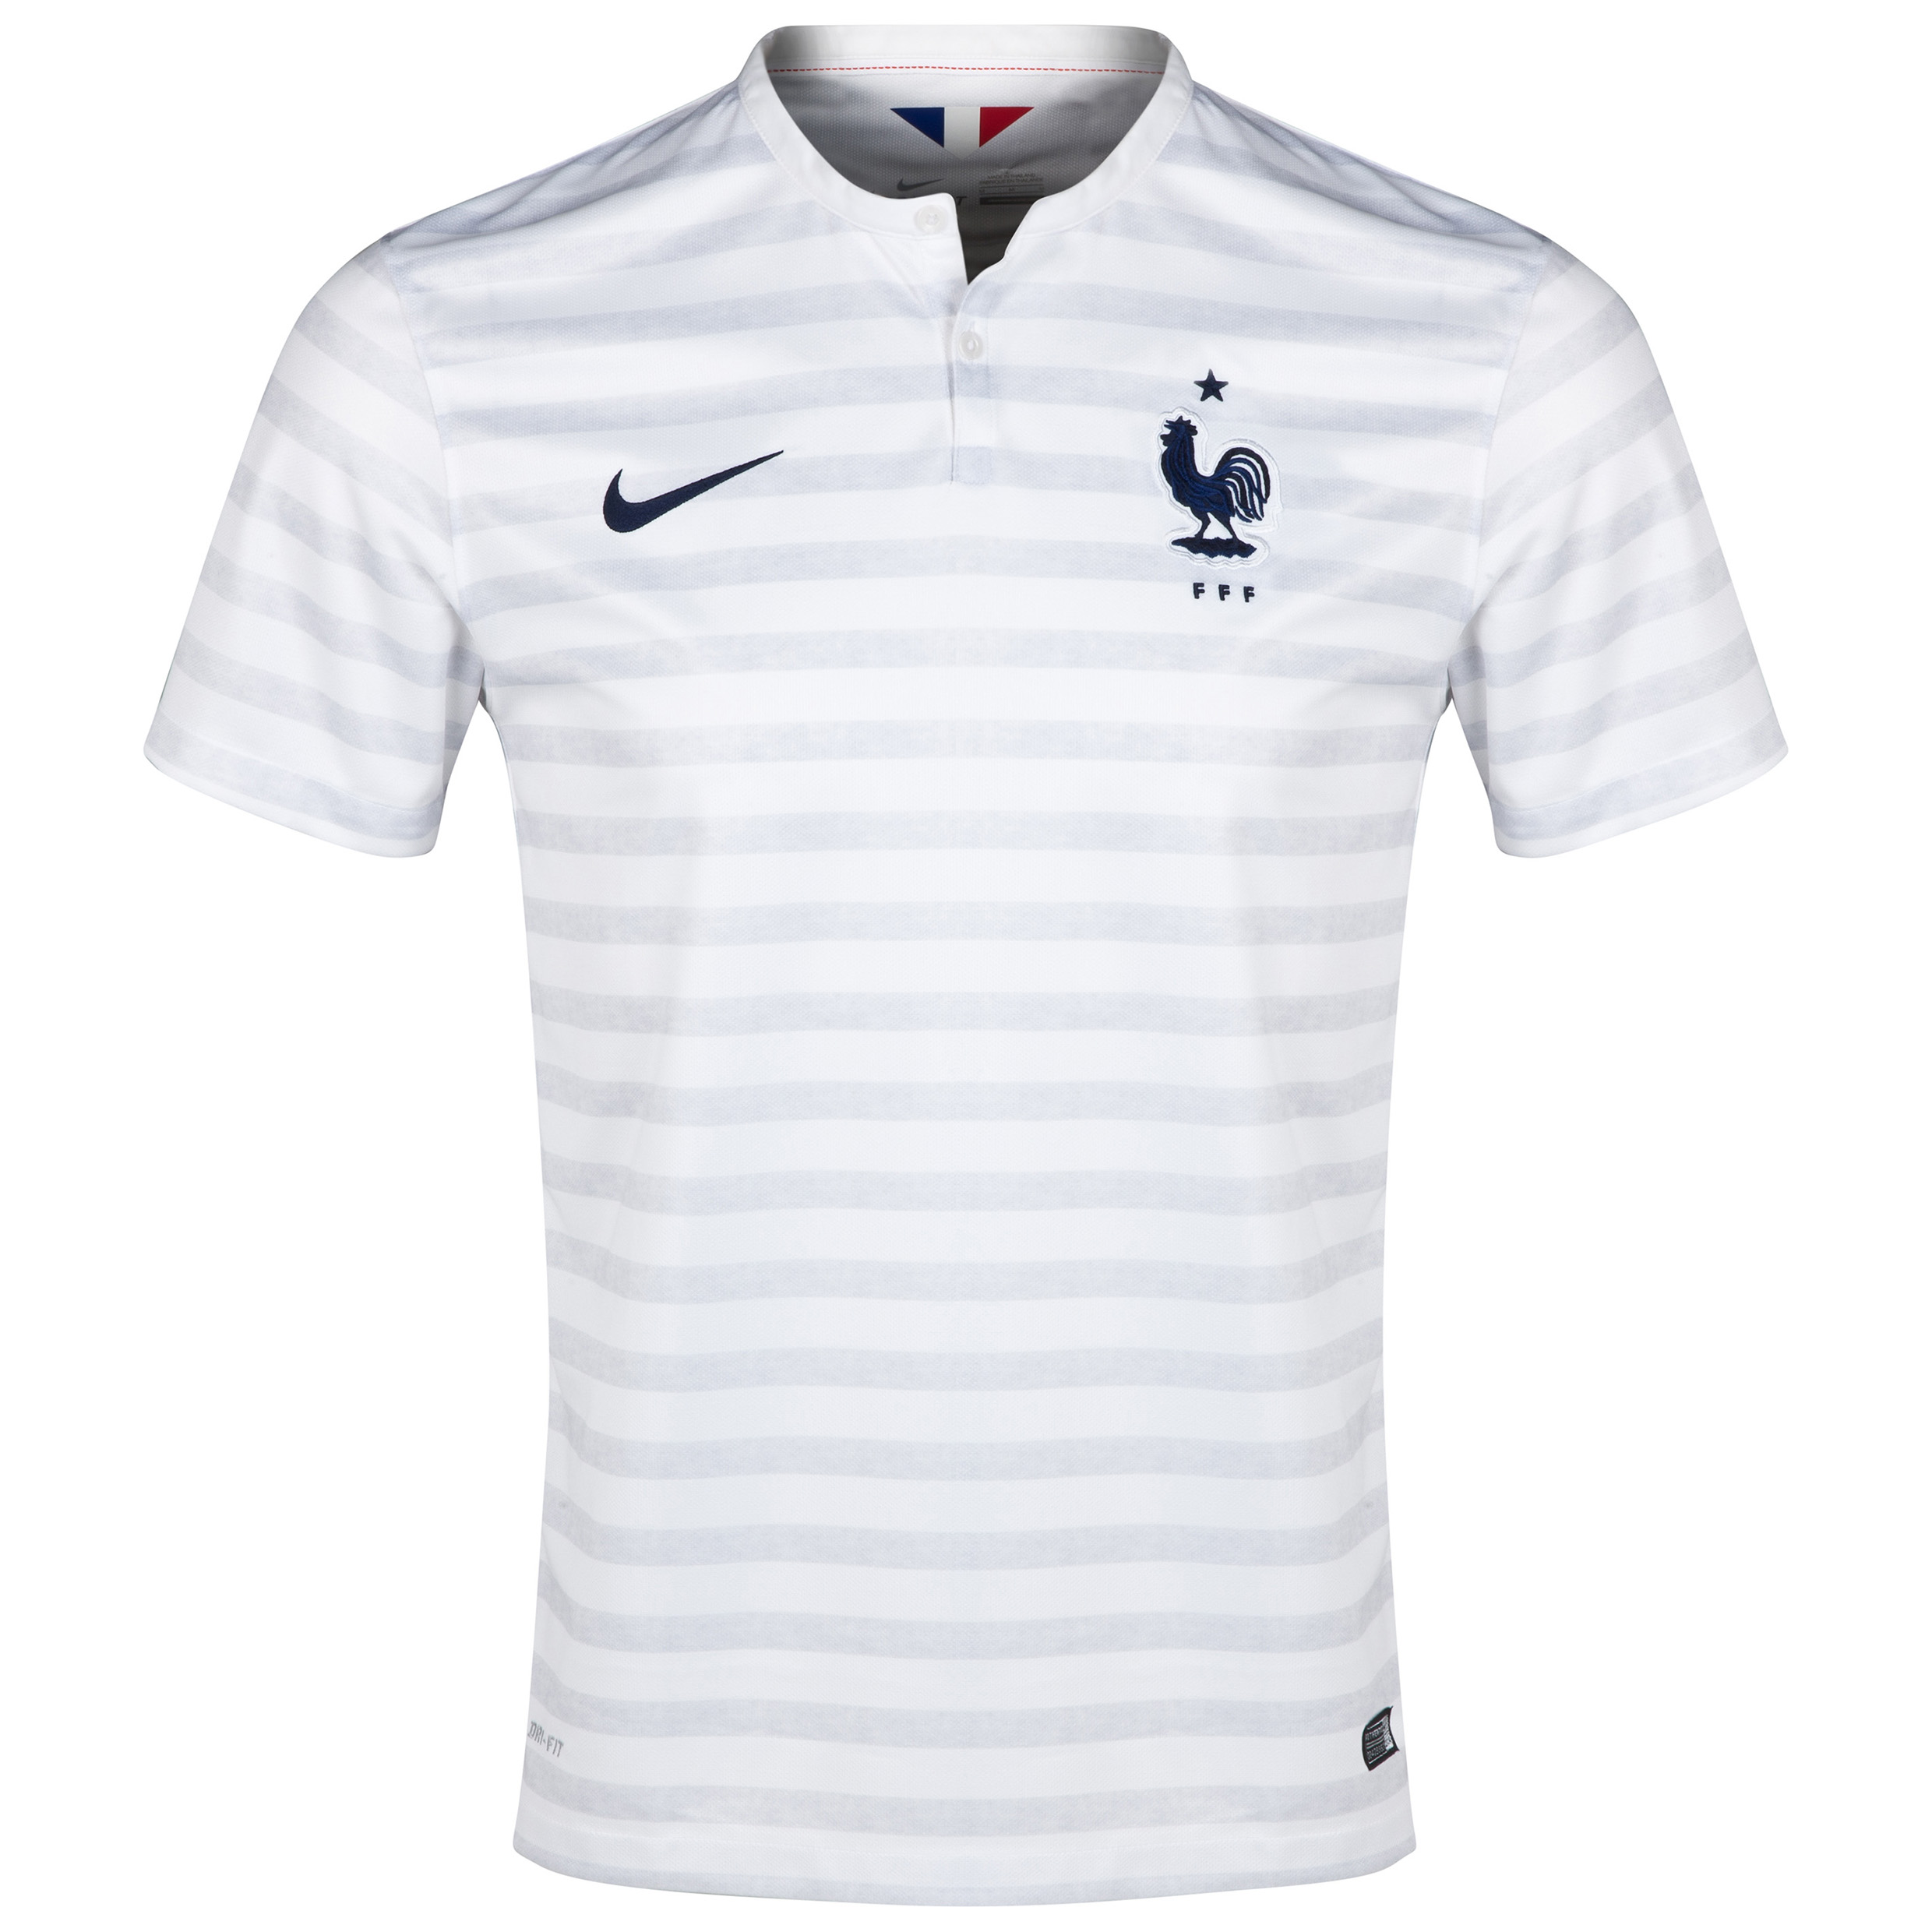 France Away Shirt 2014 White